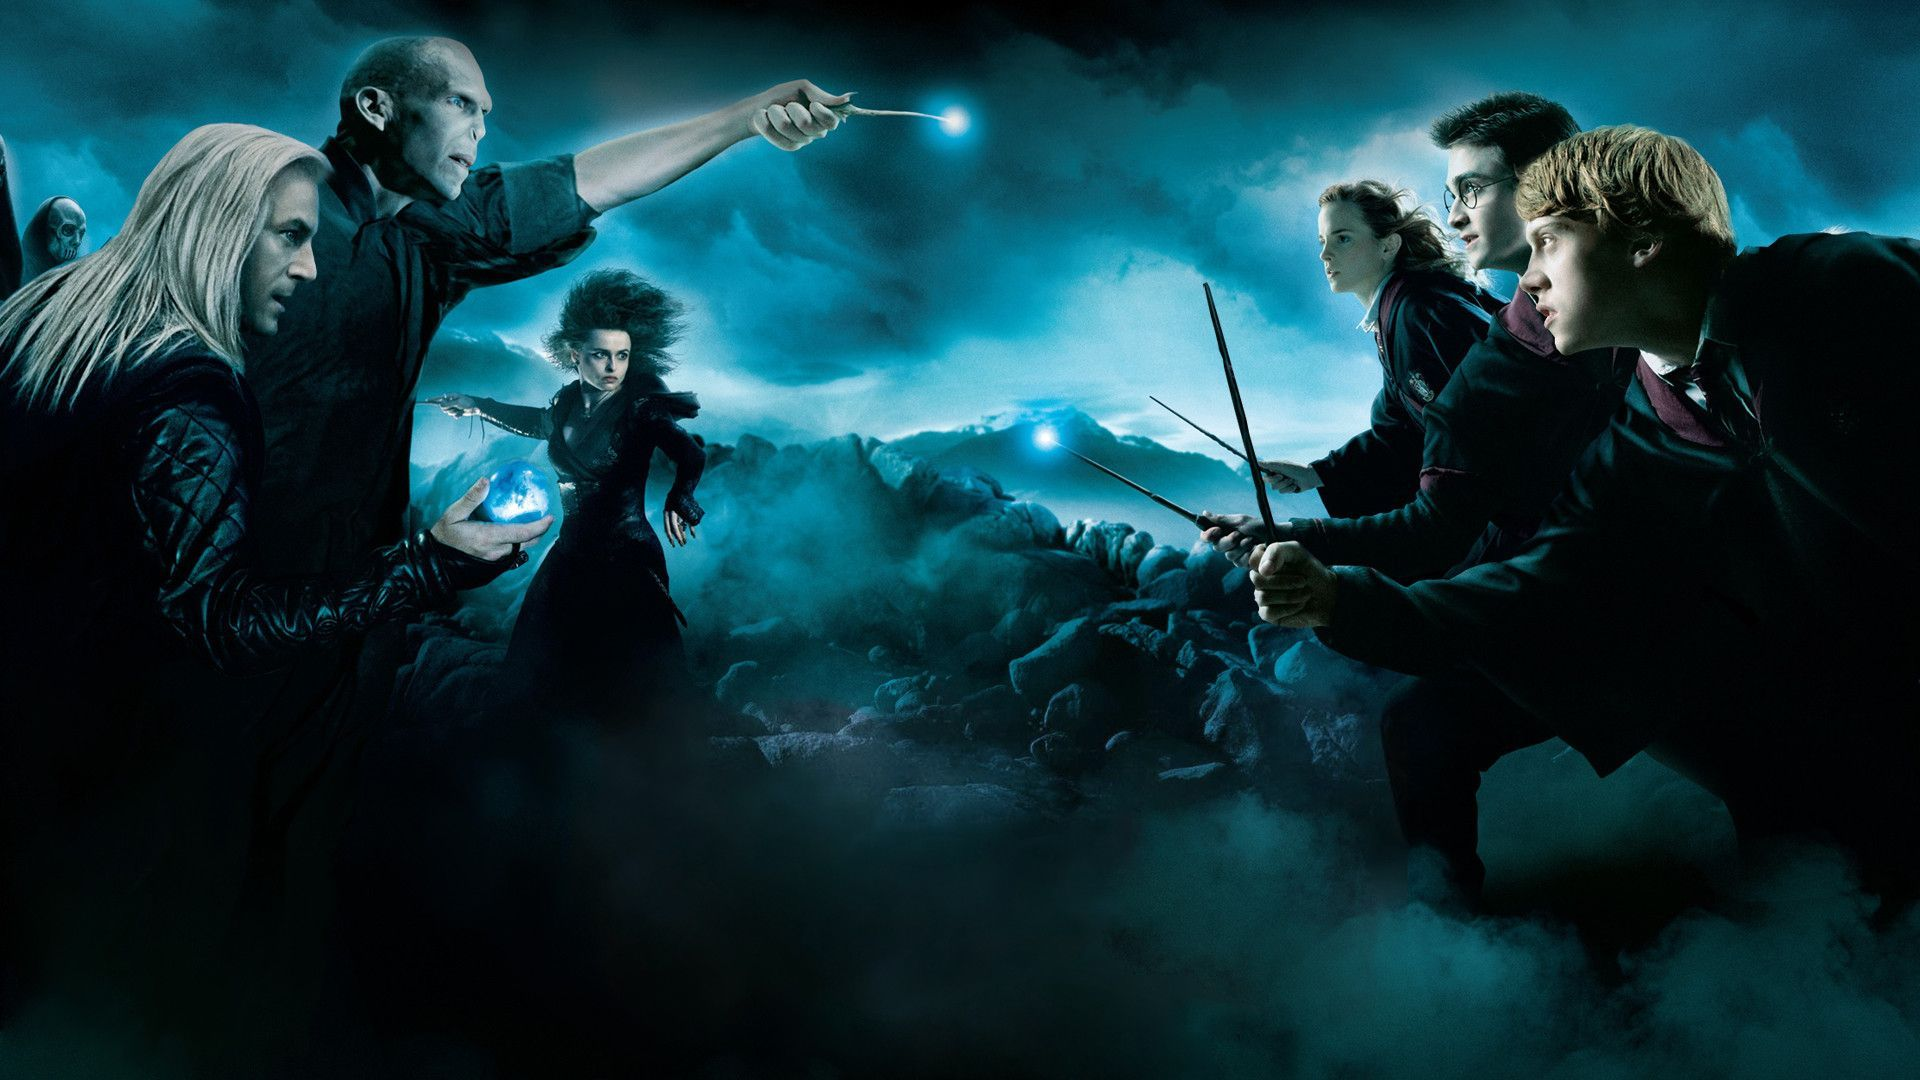 Harry Potter And The Order Of The Phoenix Harry Potter Movies